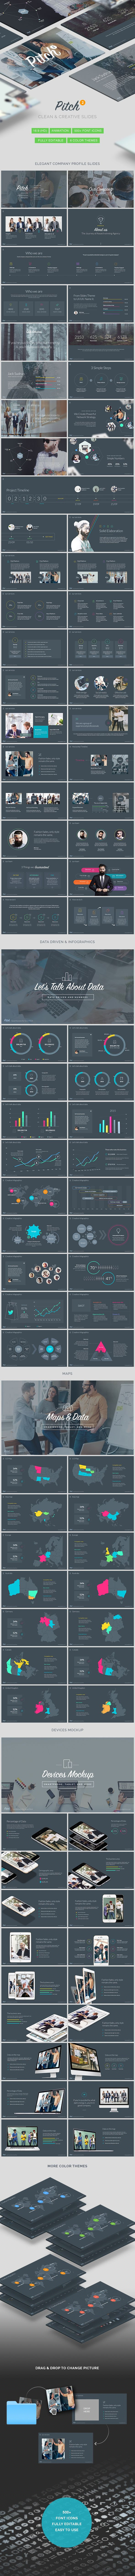 Pitch 2 - Clean & Modern Keynote Template. Download here: http://graphicriver.net/item/pitch-2-clean-modern-keynote-template/16072556?ref=ksioks